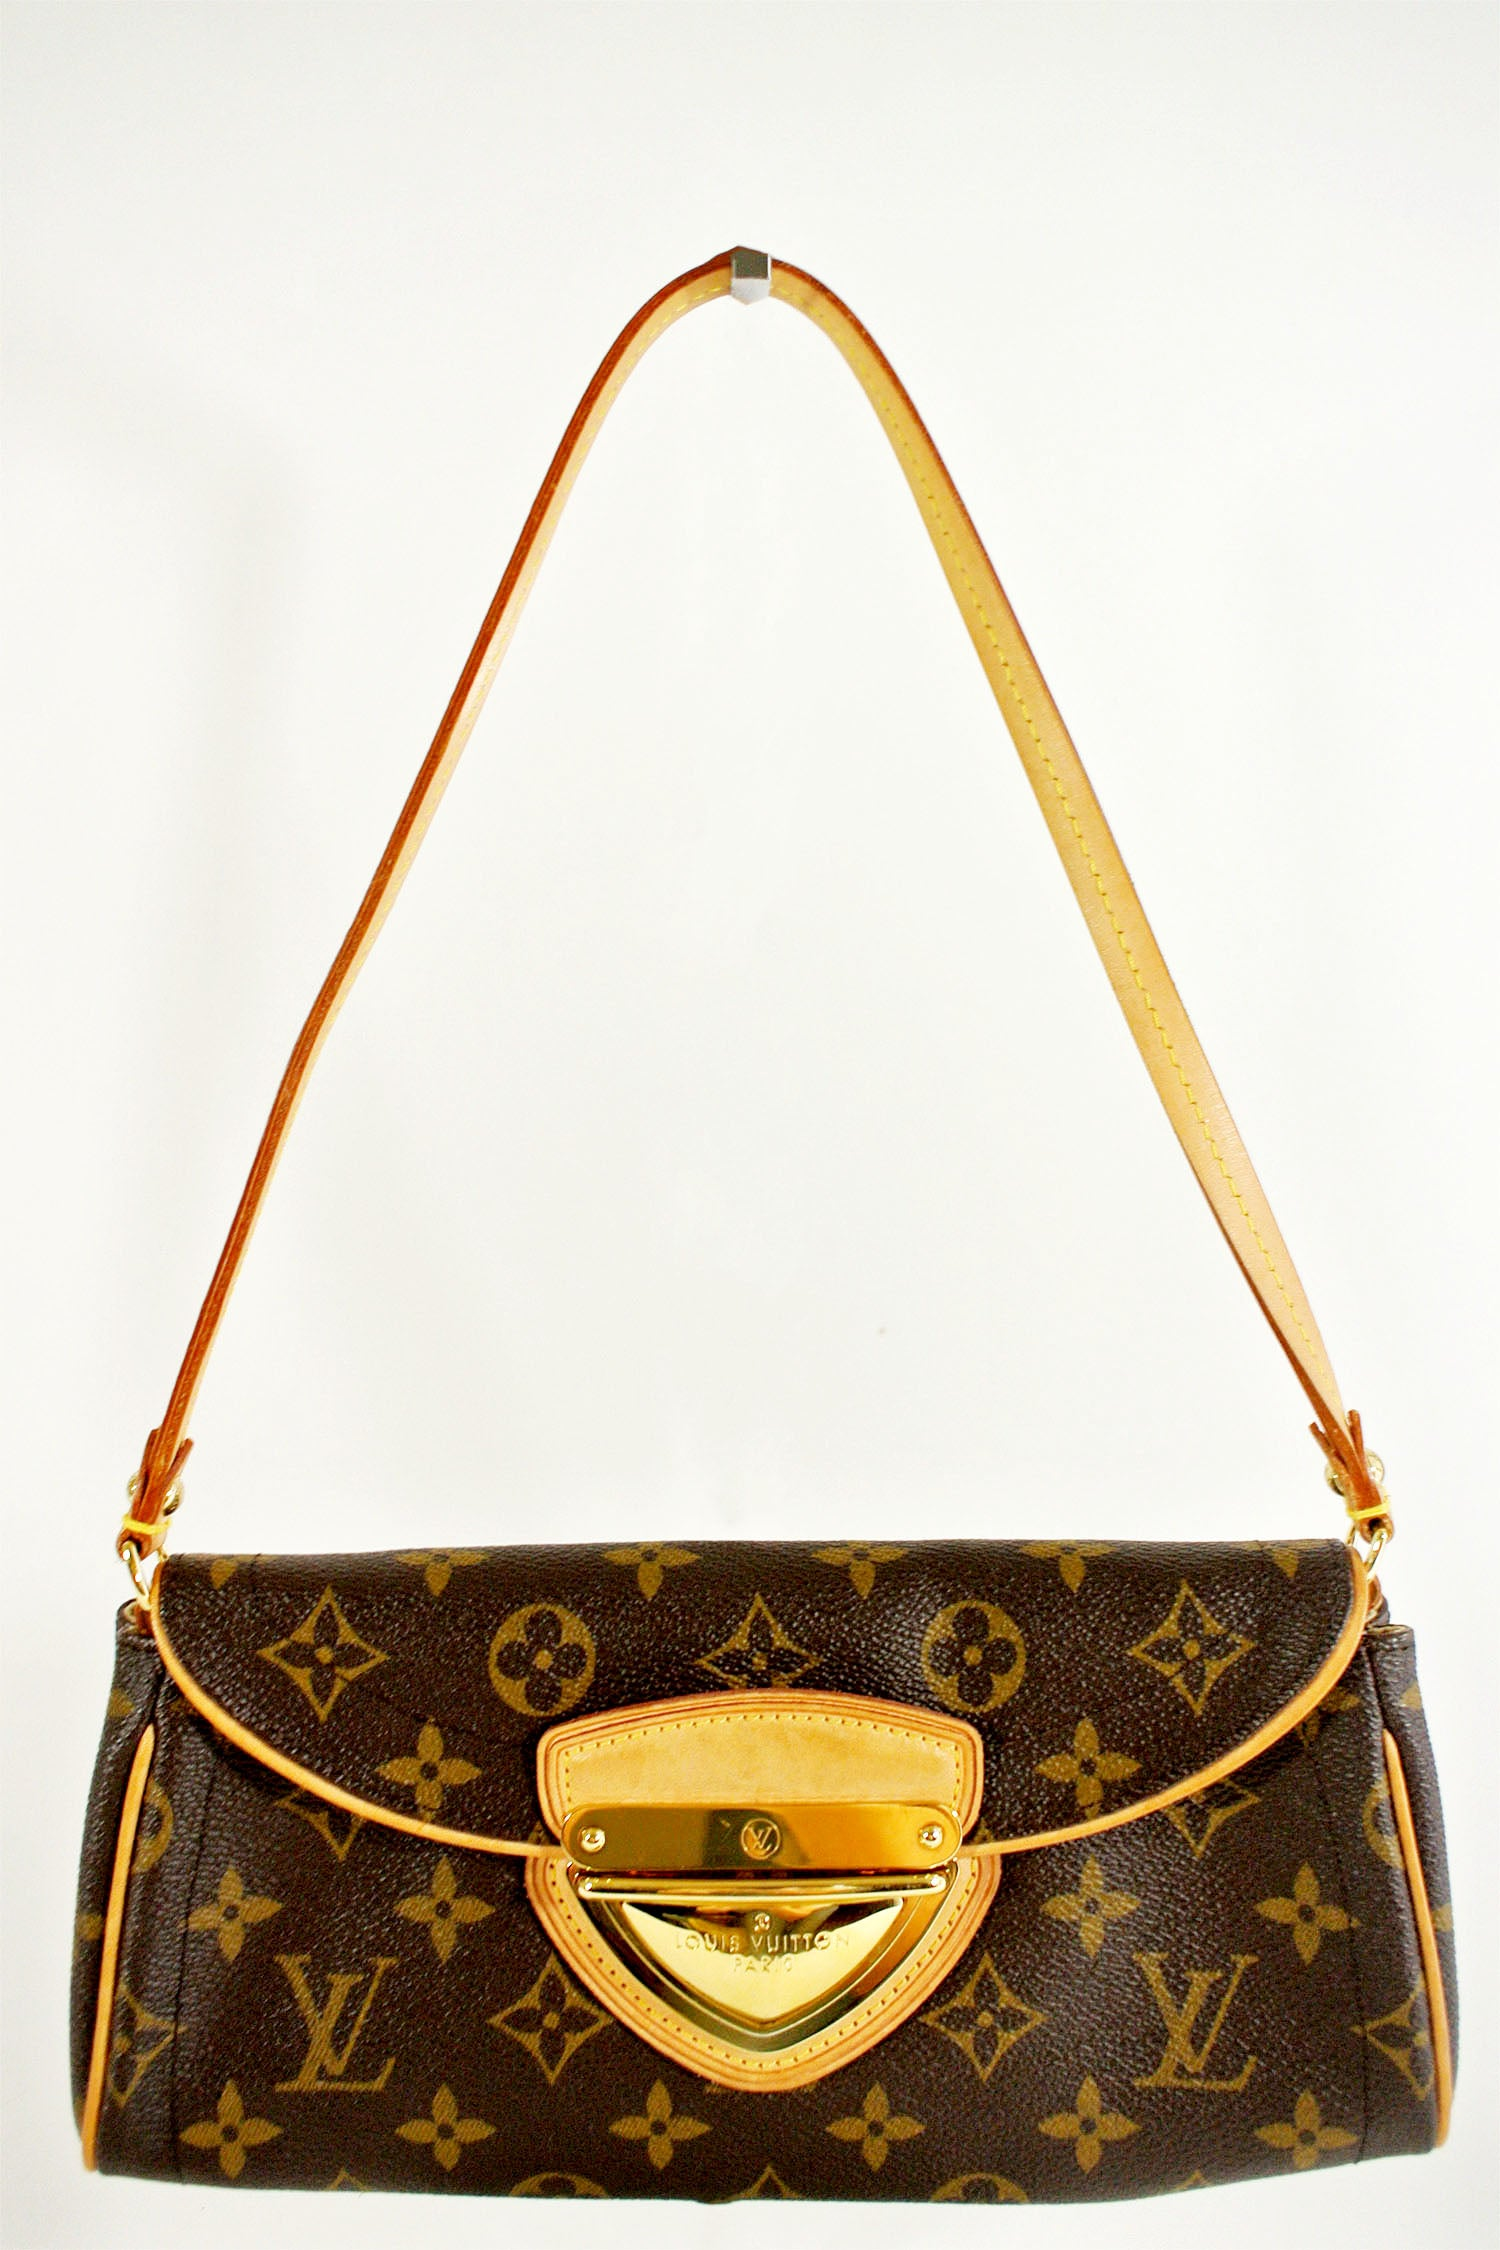 Louis Vuitton Monogram Pouchette Beverly Shoulder Bag